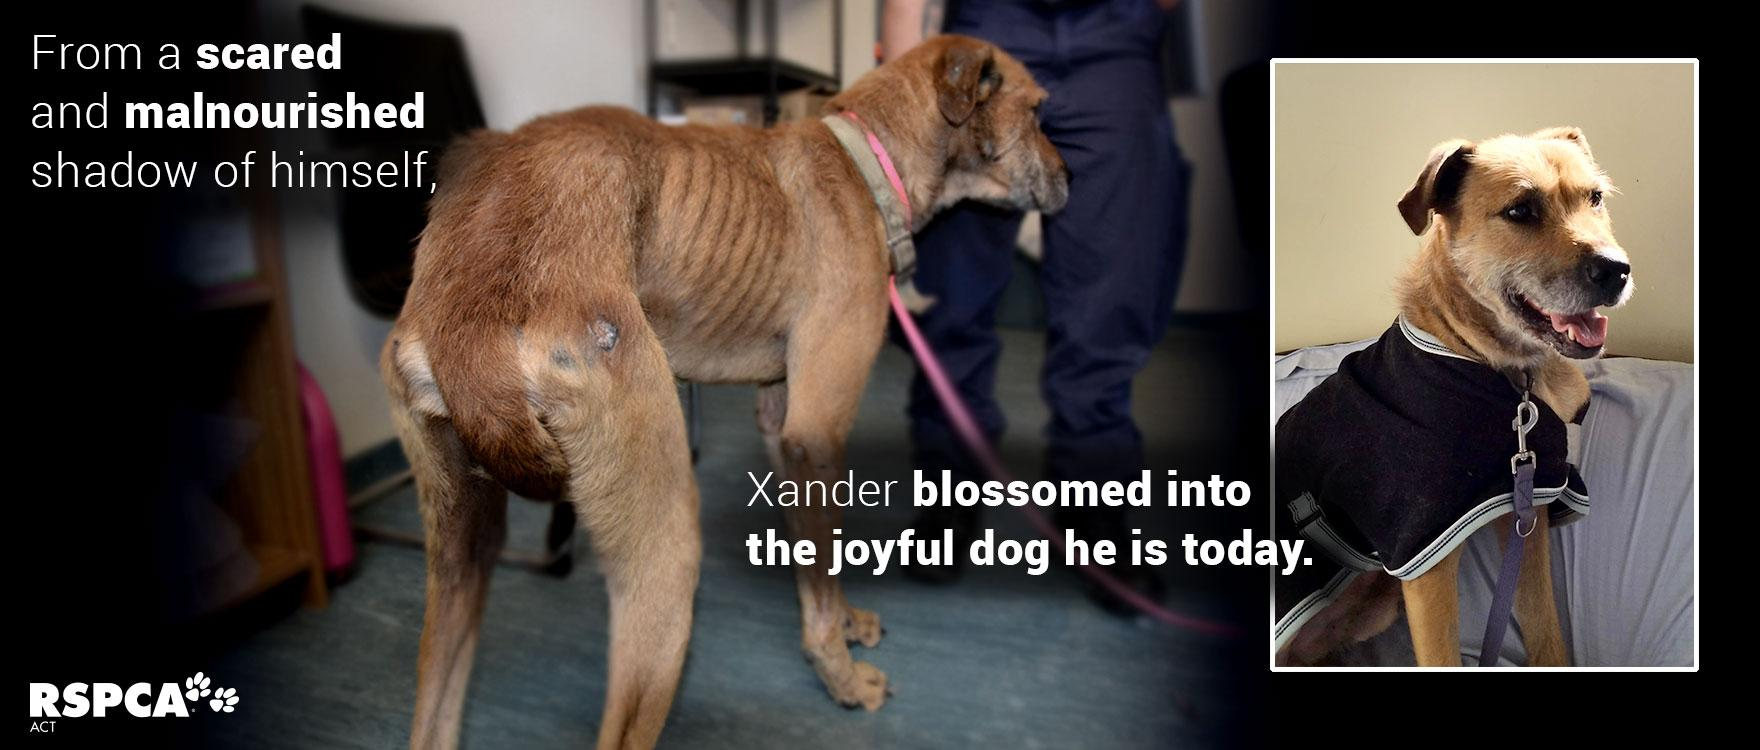 Xander and 5 other dogs were in need of immediate help